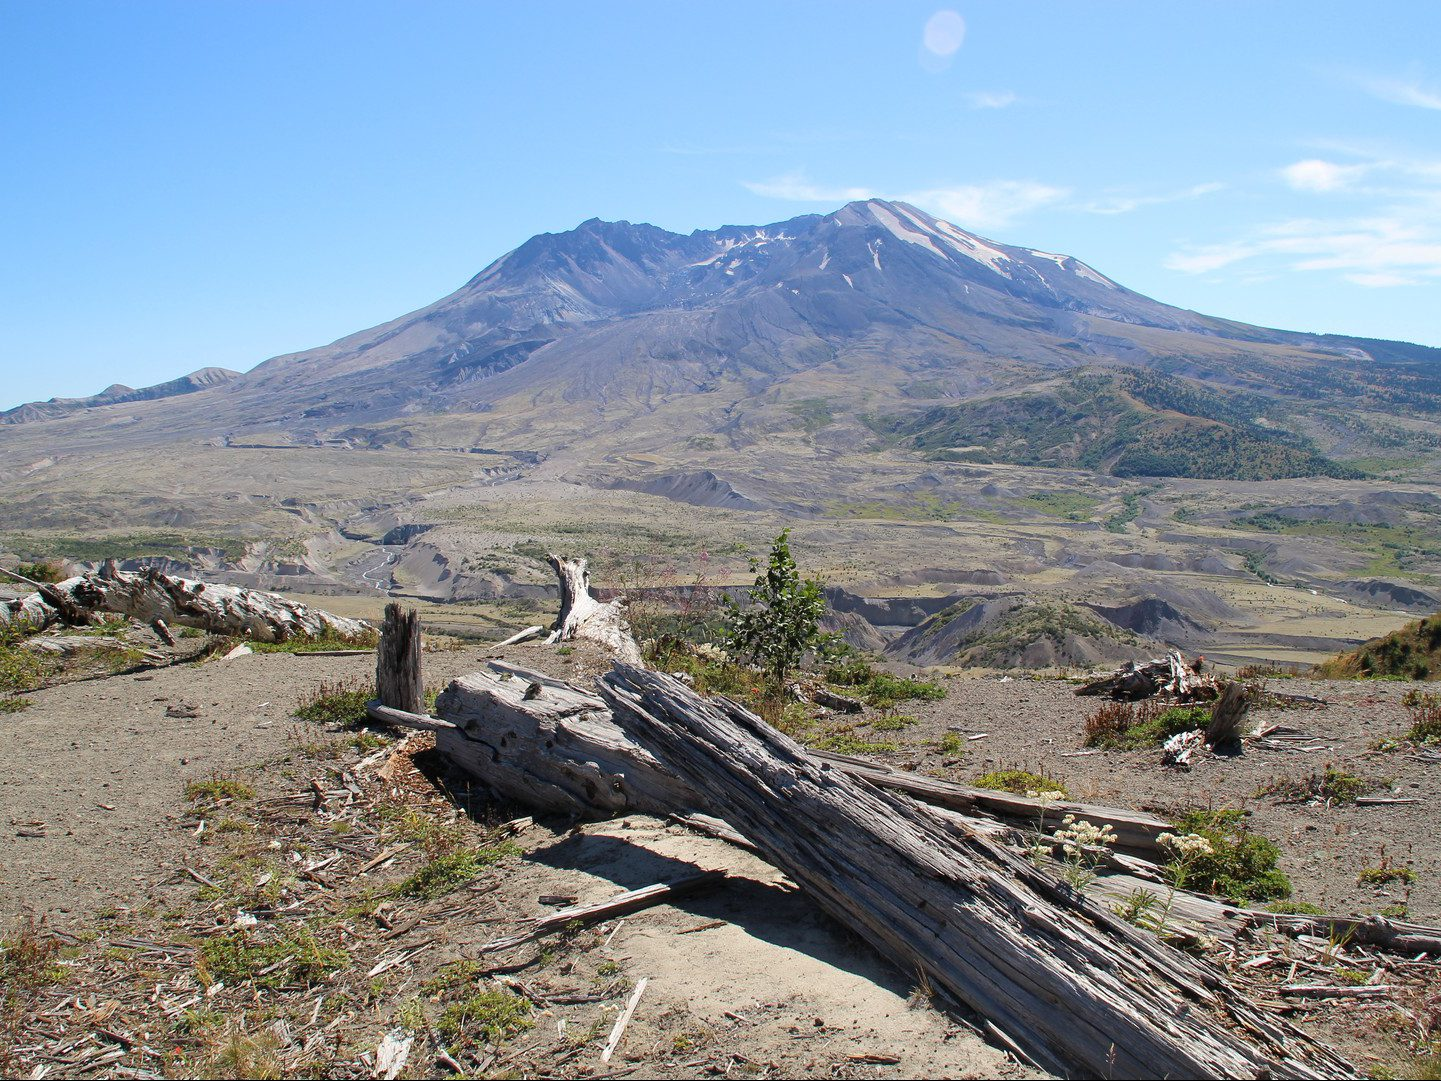 Mount St Helens: the most destructive volcano of the USA